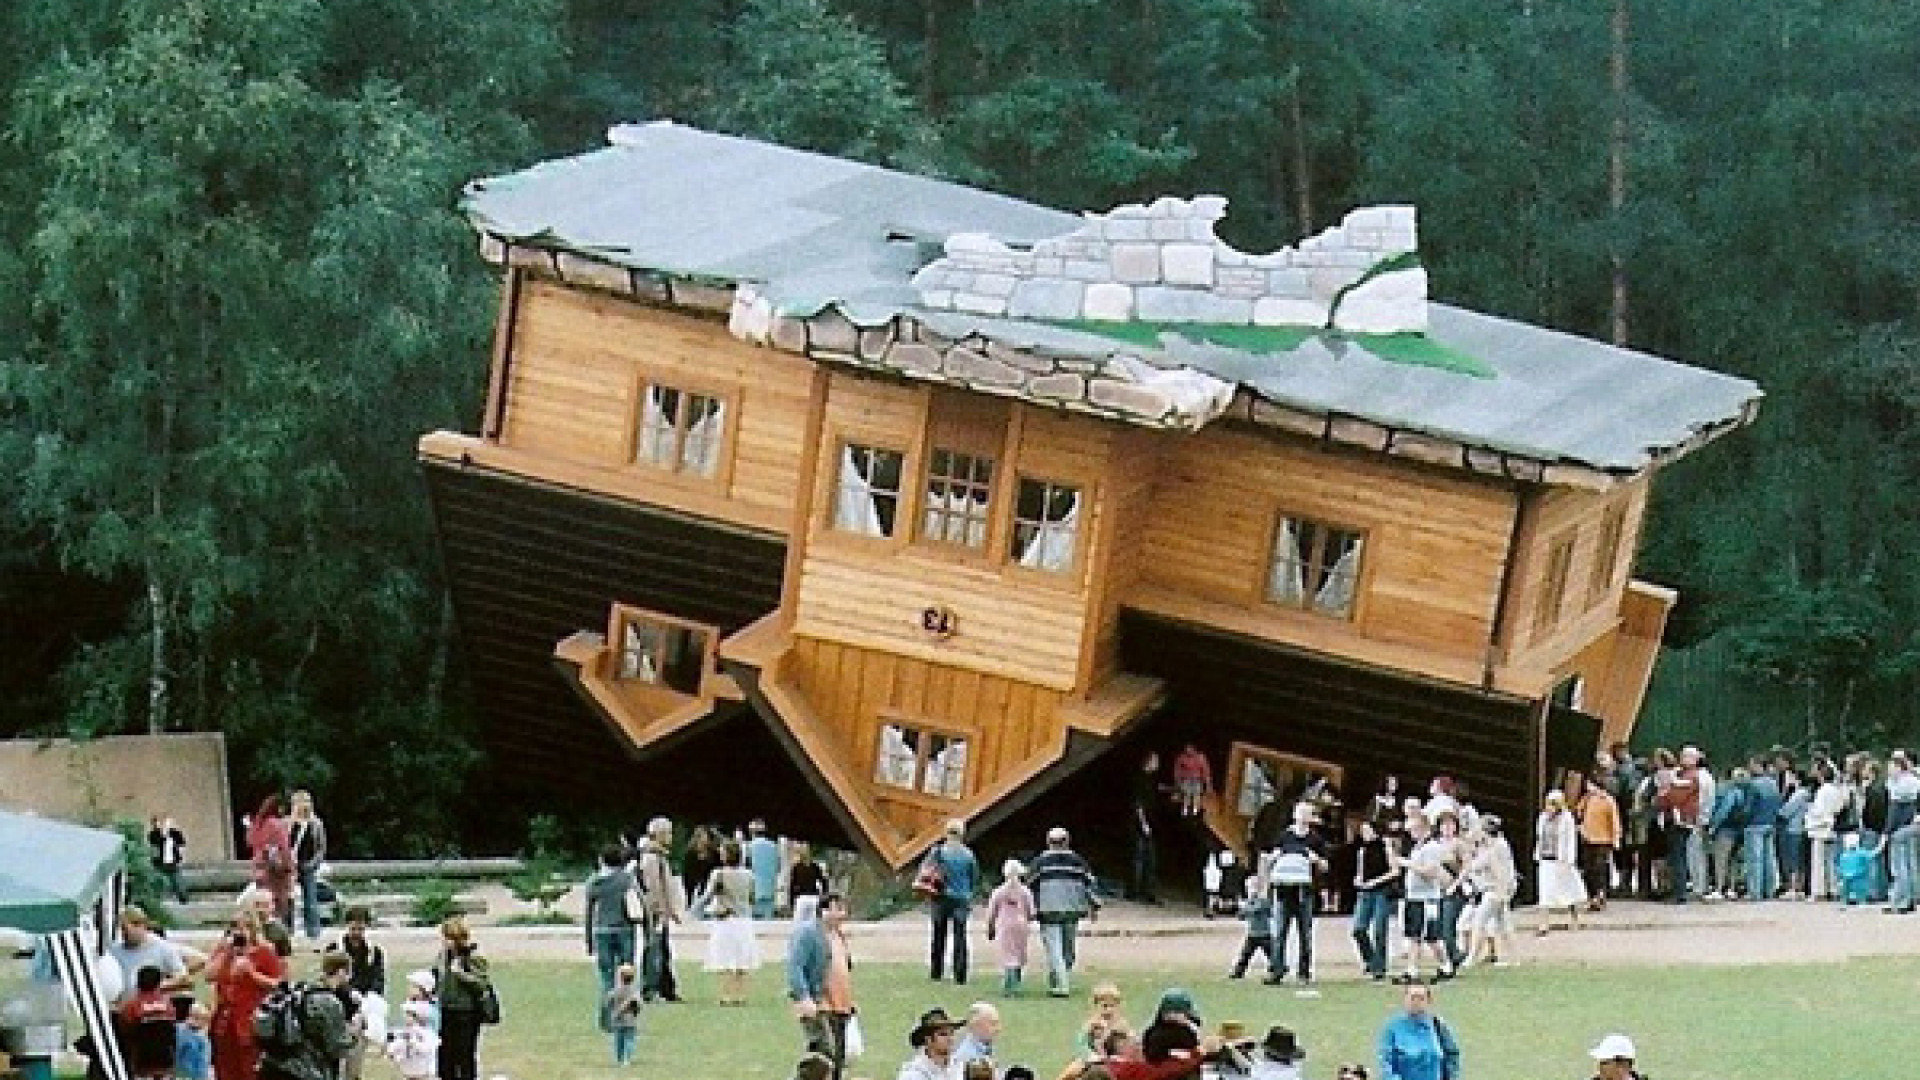 5 Outrageous Stories of Real-Life 'Up' Houses